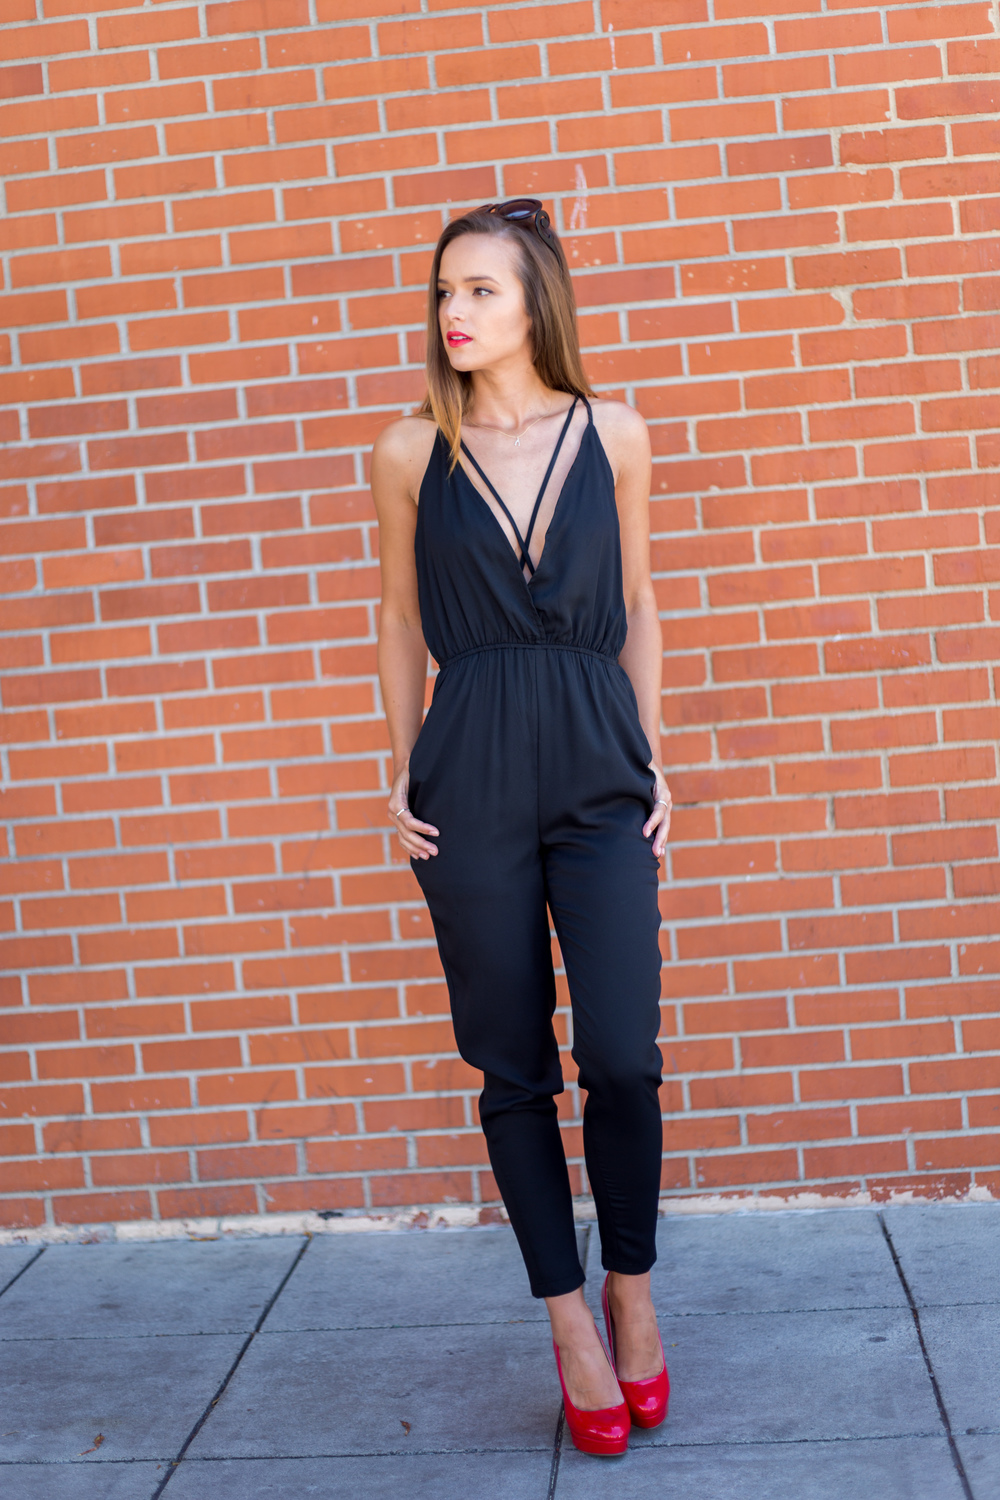 Helen wearing our sexyMoonstone Romper in Black. Available exclusively at Modlook29.com!